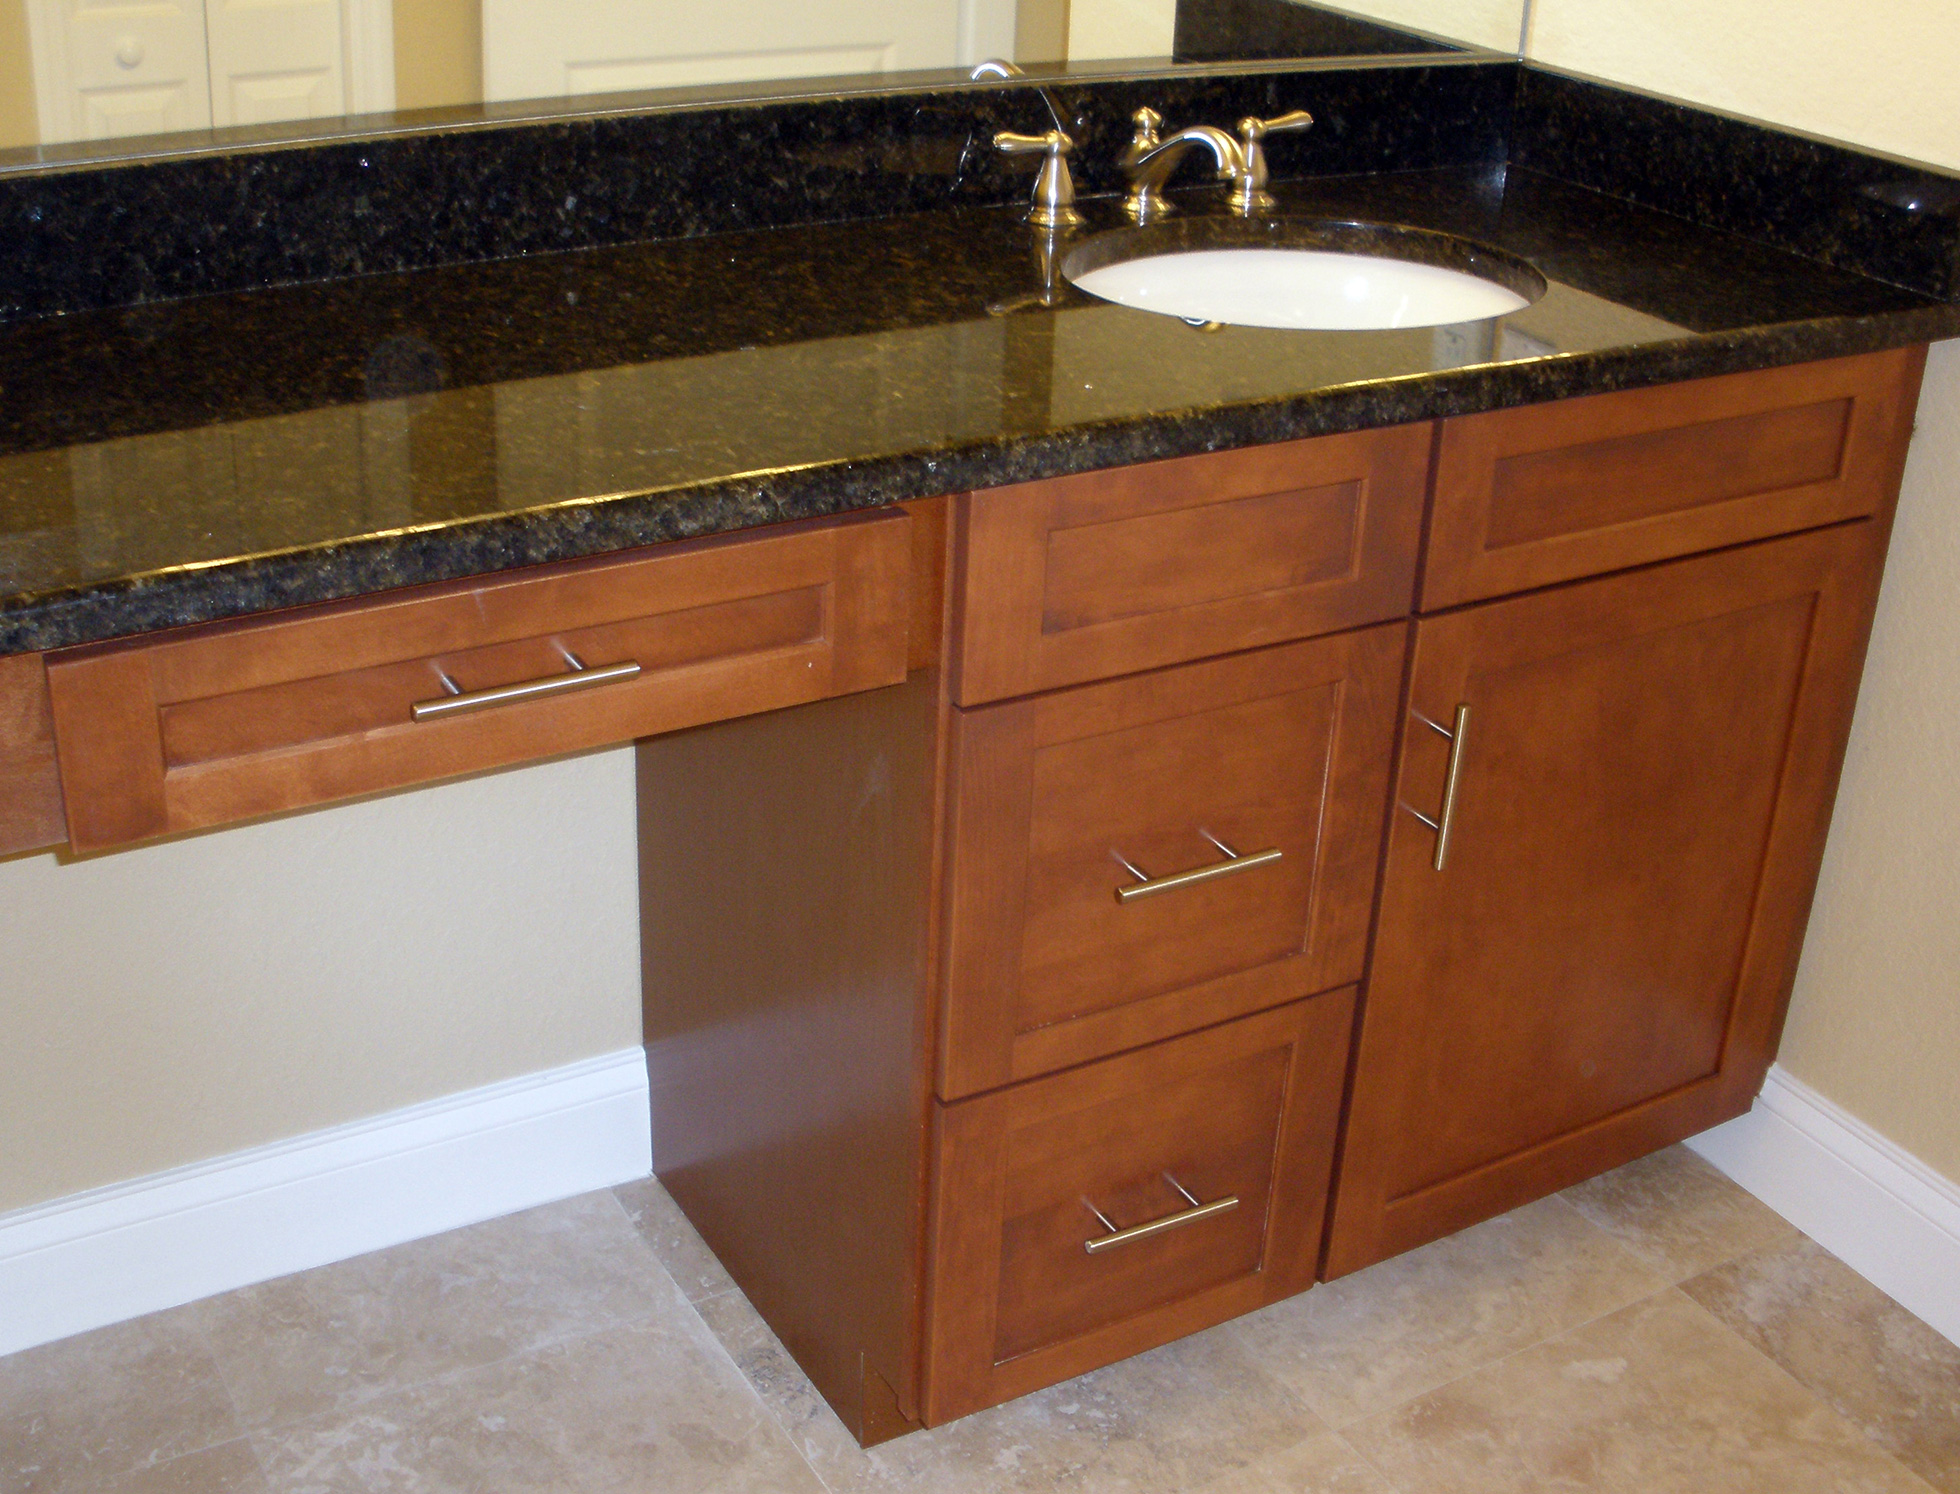 Bathroom sink cabinets ideas - Bathroom Sink Cabinets Ideas 27